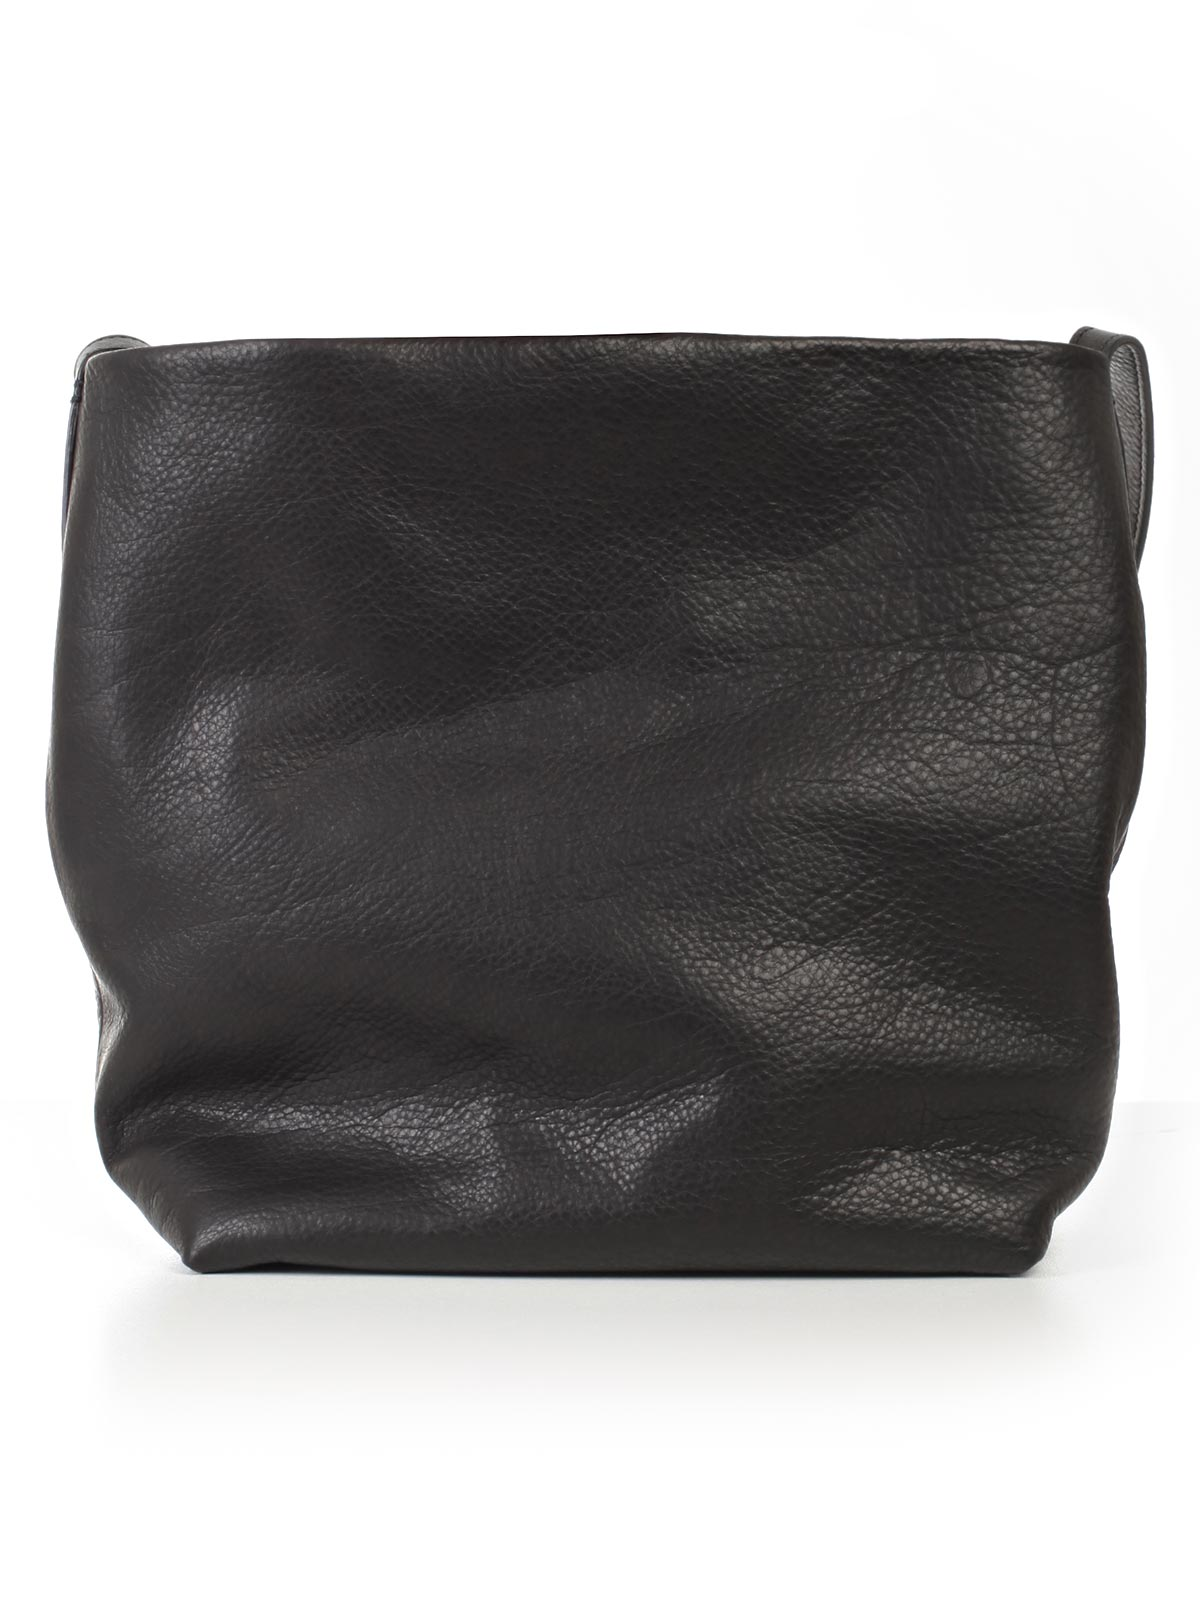 Picture of ANN DEMEULEMESTER Totes